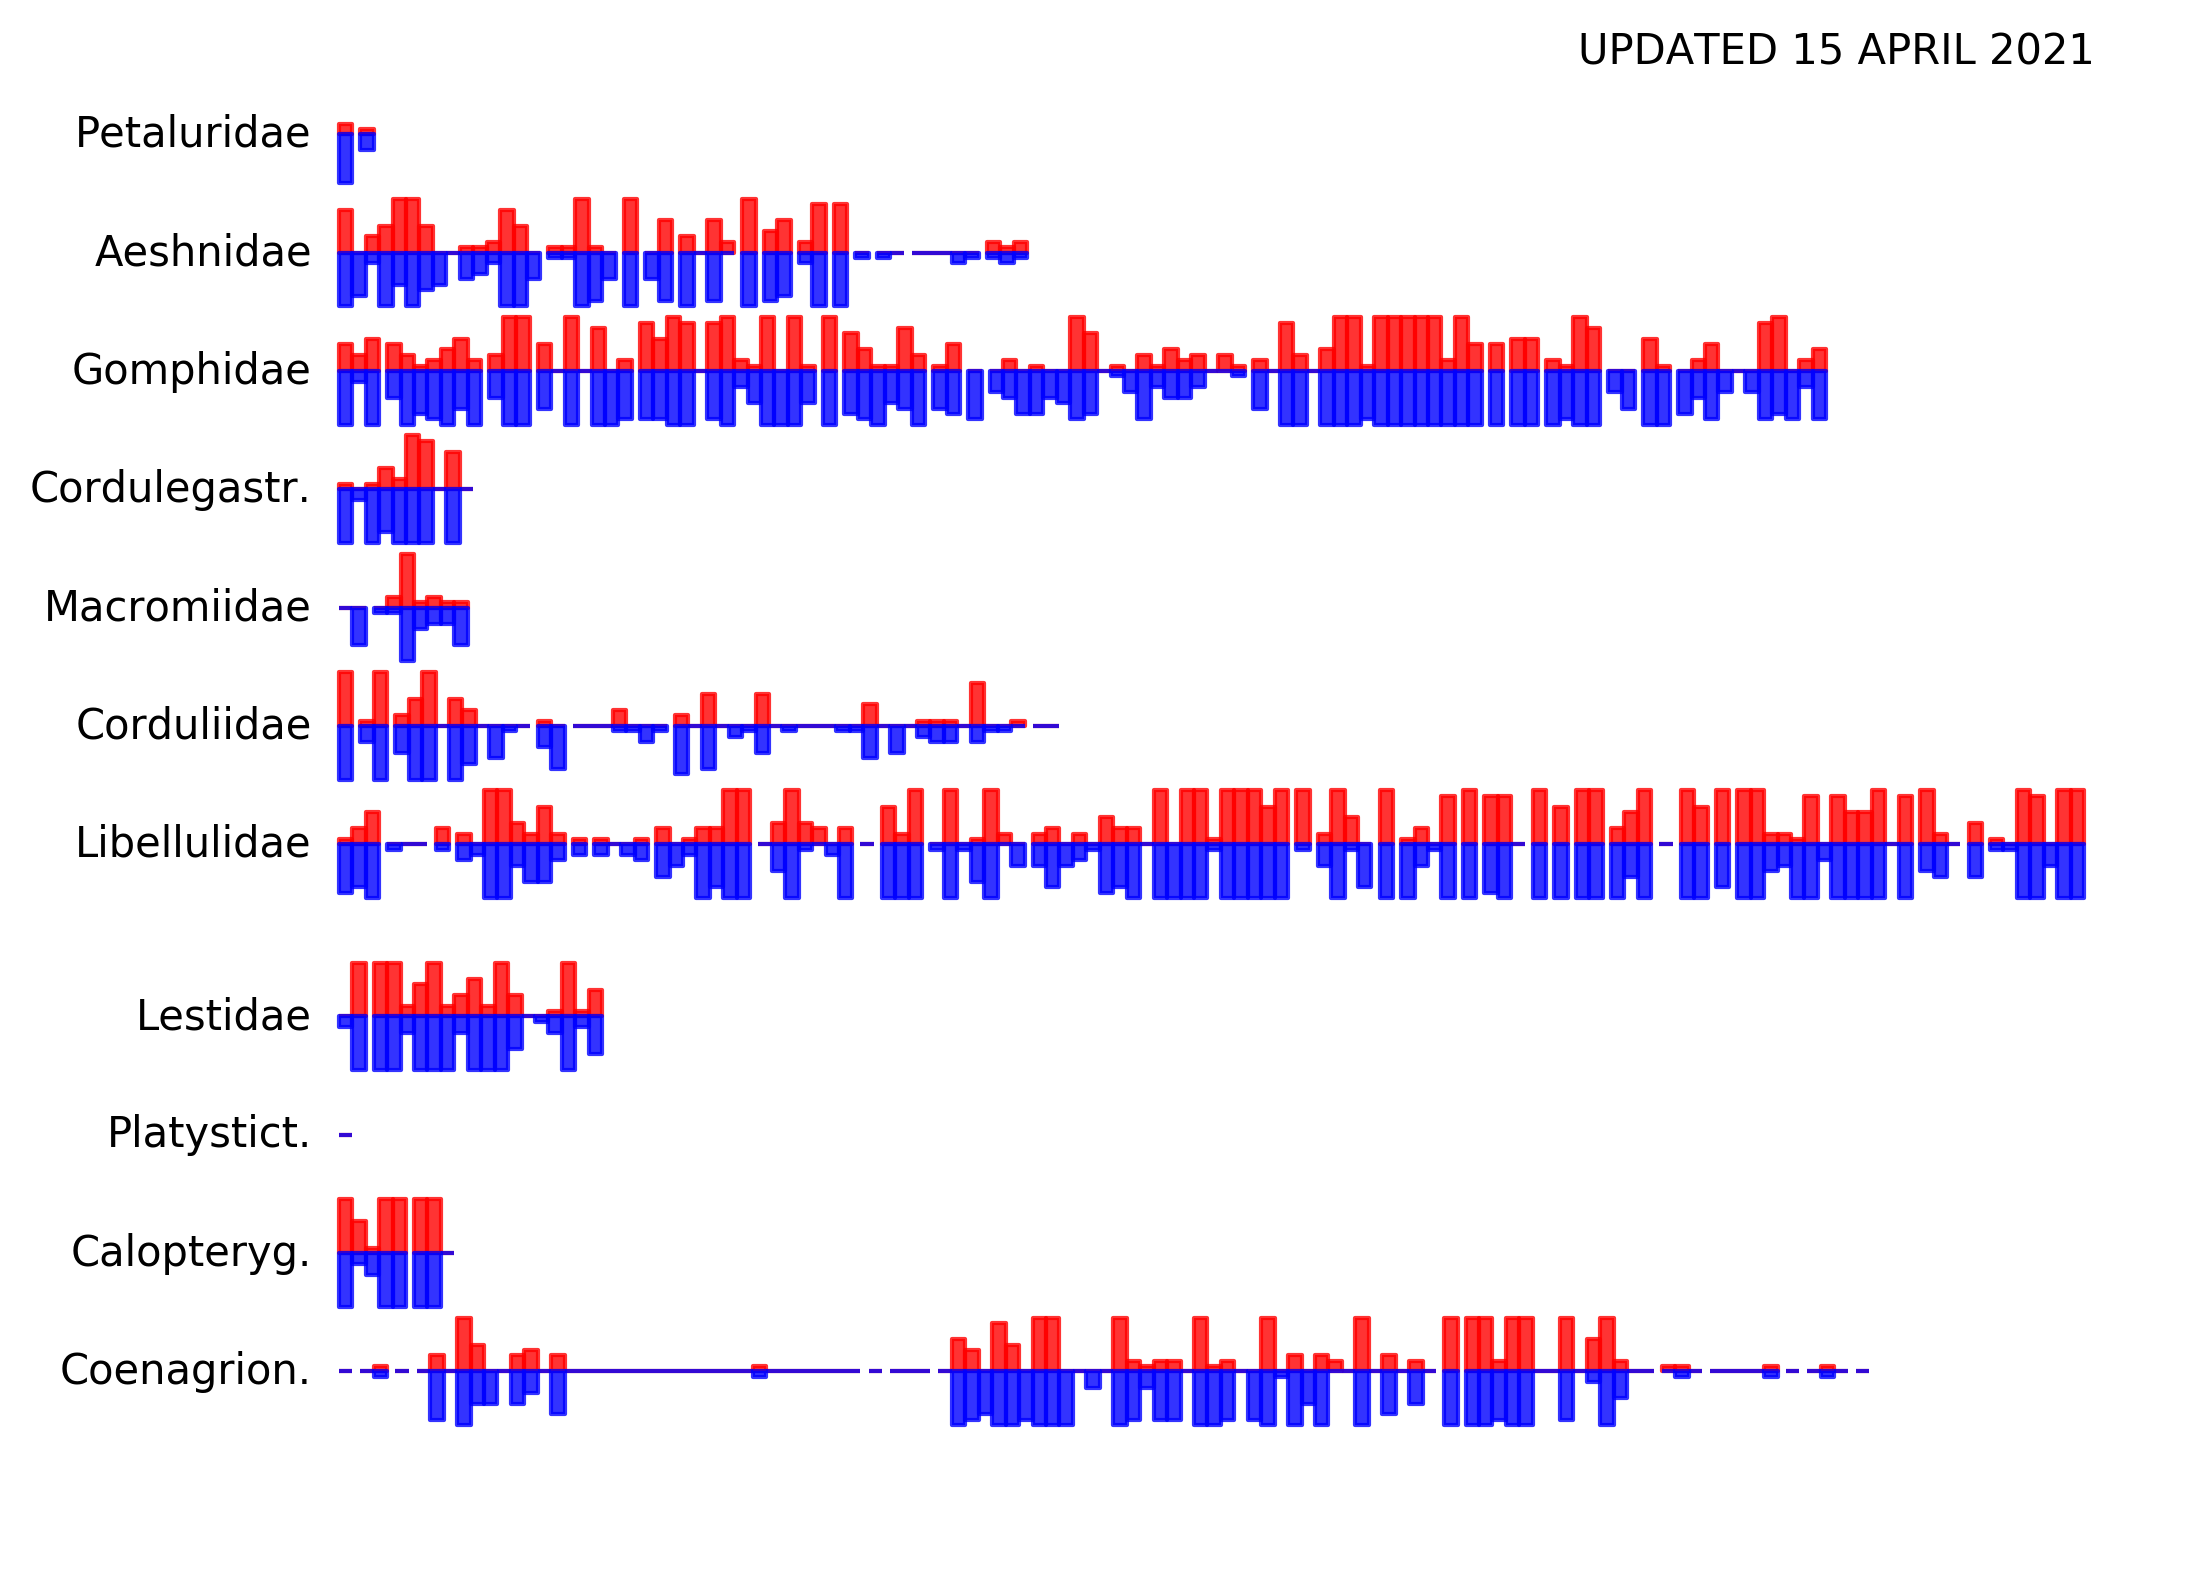 Represented here are all odonate species from US and Canada. Bars represent species; clusters of bars are genera (sorted alphabetically); rows are families; progress bars are the number of ♀ (red) and ♂ (blue) scans we've made out of 10 for each species.